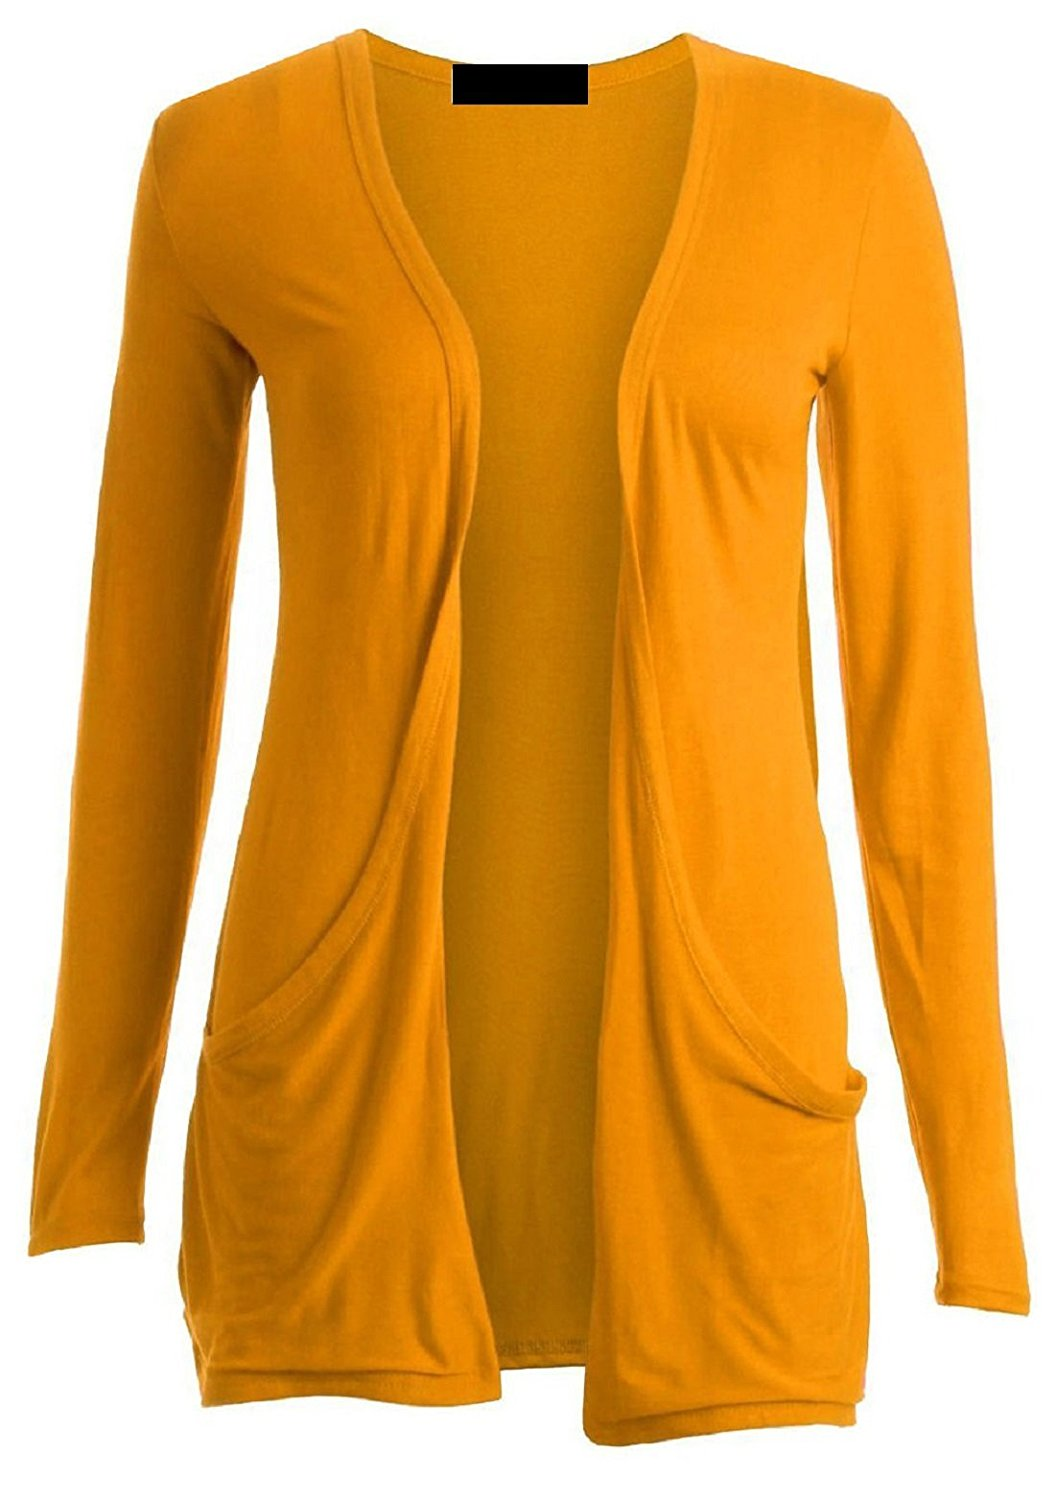 a05cd49bfd Get Quotations · Ladies Women Boyfriend Open Cardigan with Pockets Mustard  M/L US 8-10 UK